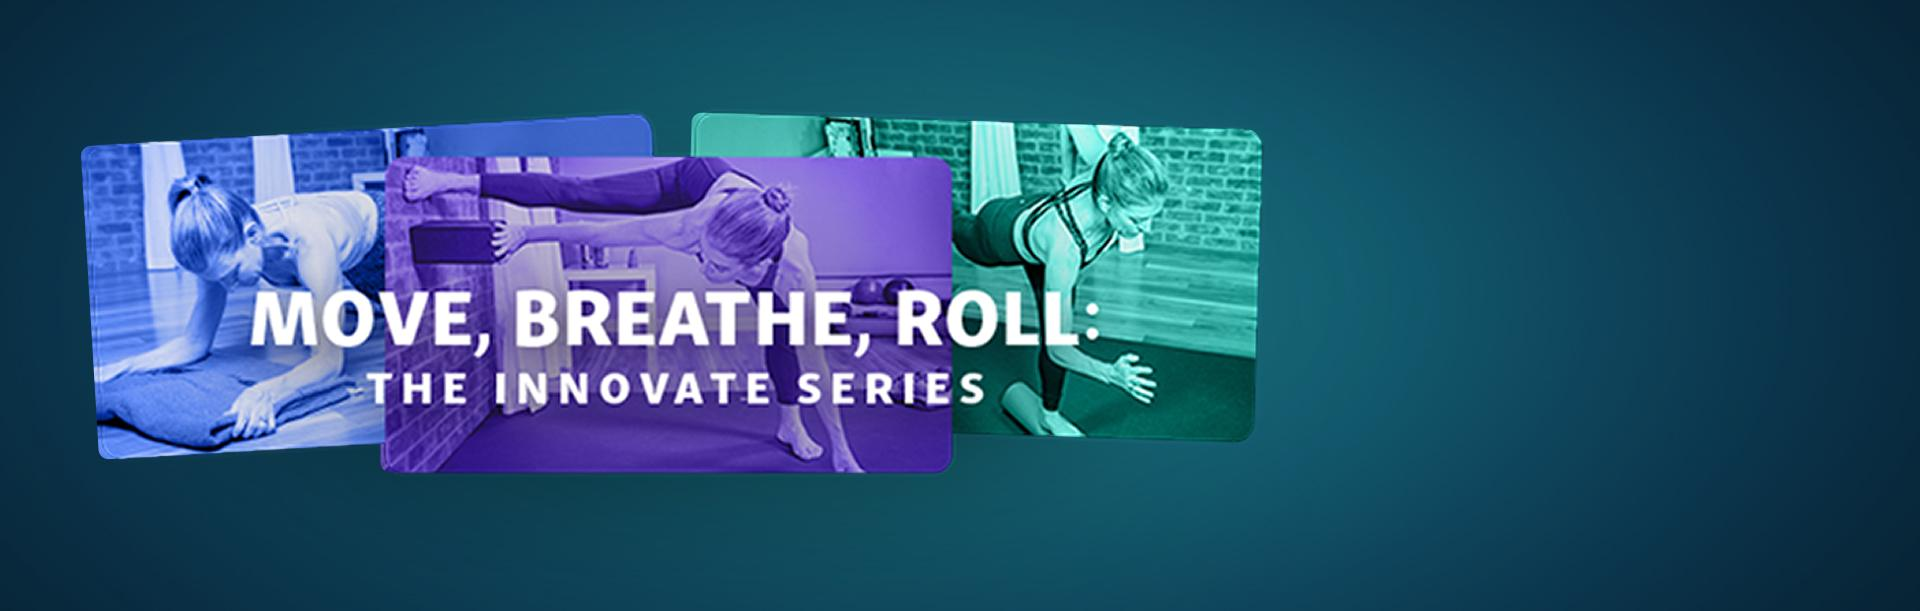 Move, Breathe, Roll - The Innovate Series